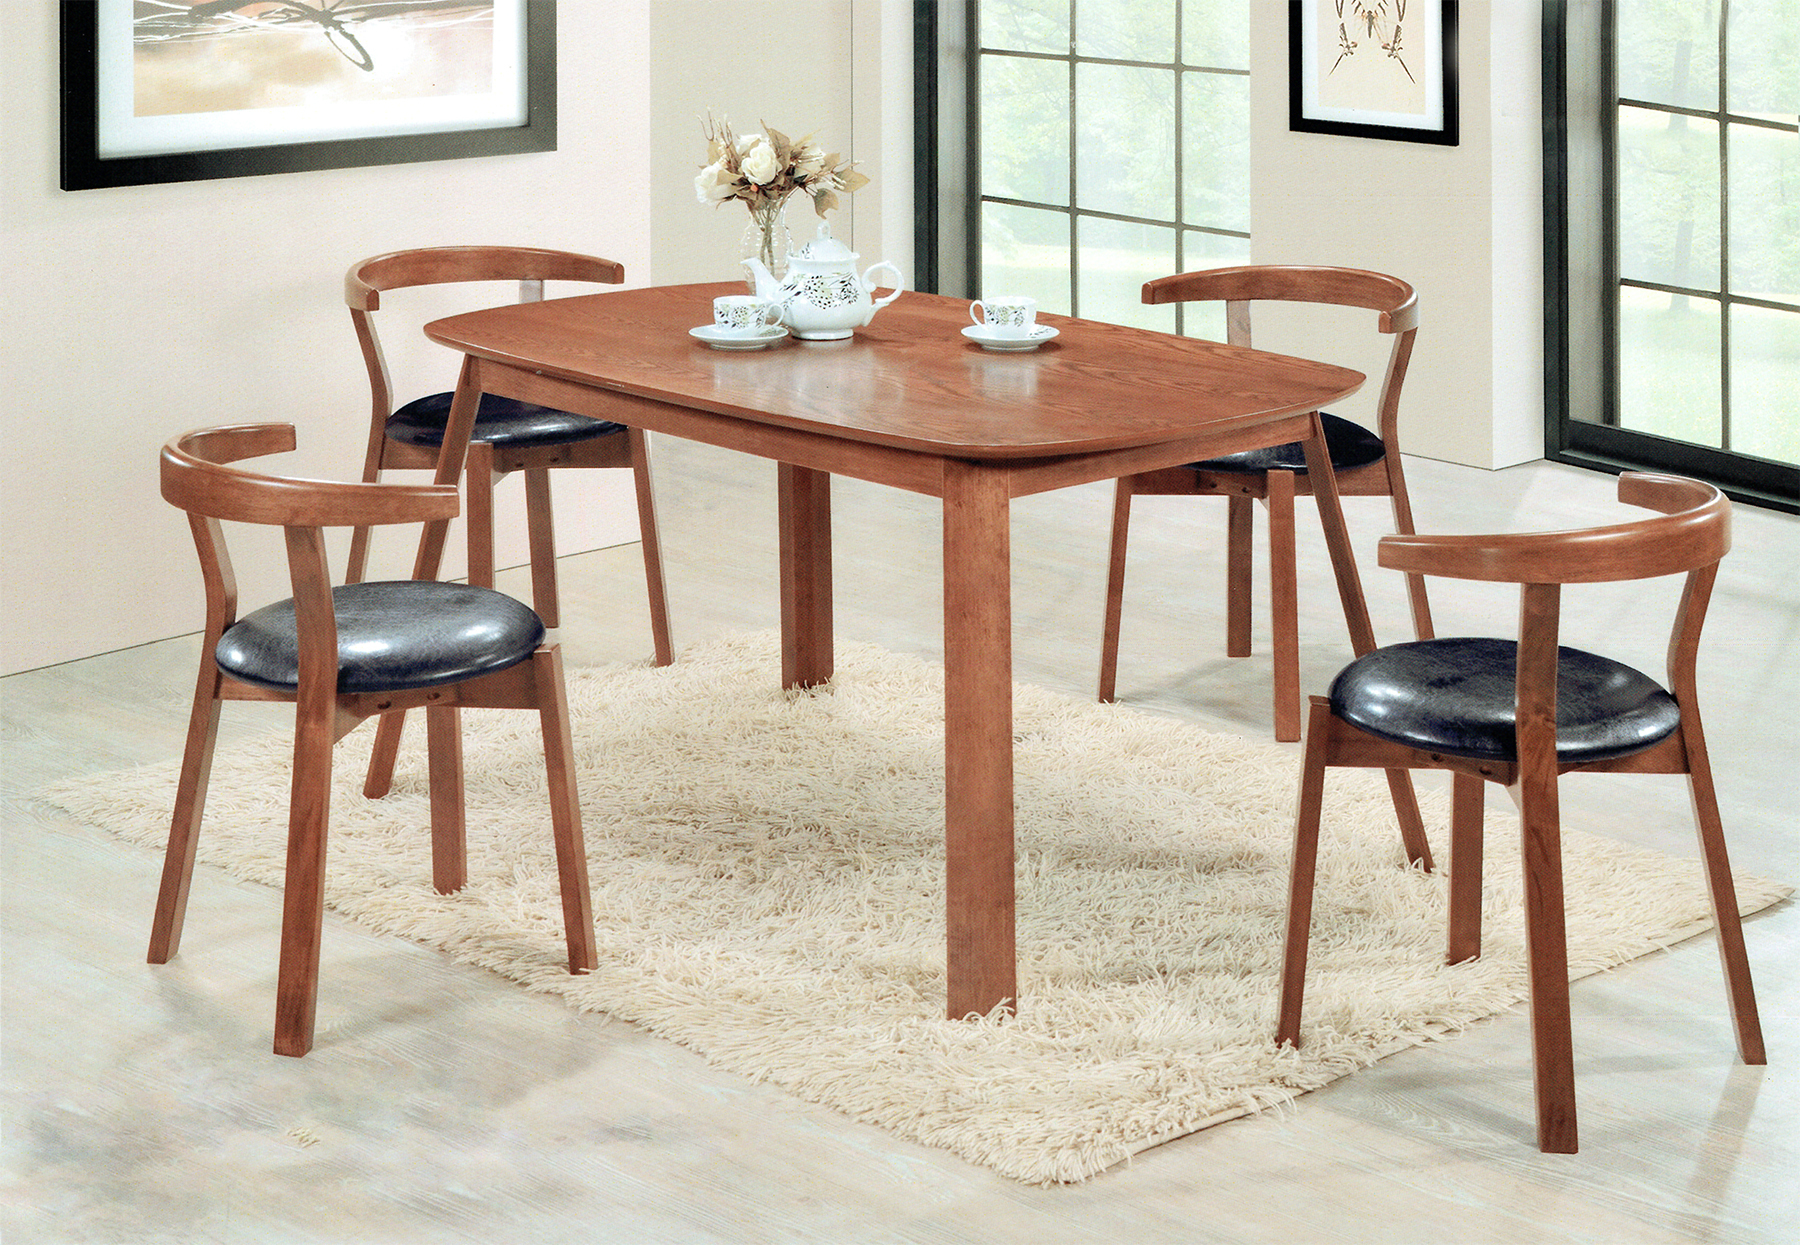 dining set nikkei T+4 chairs a.jpg